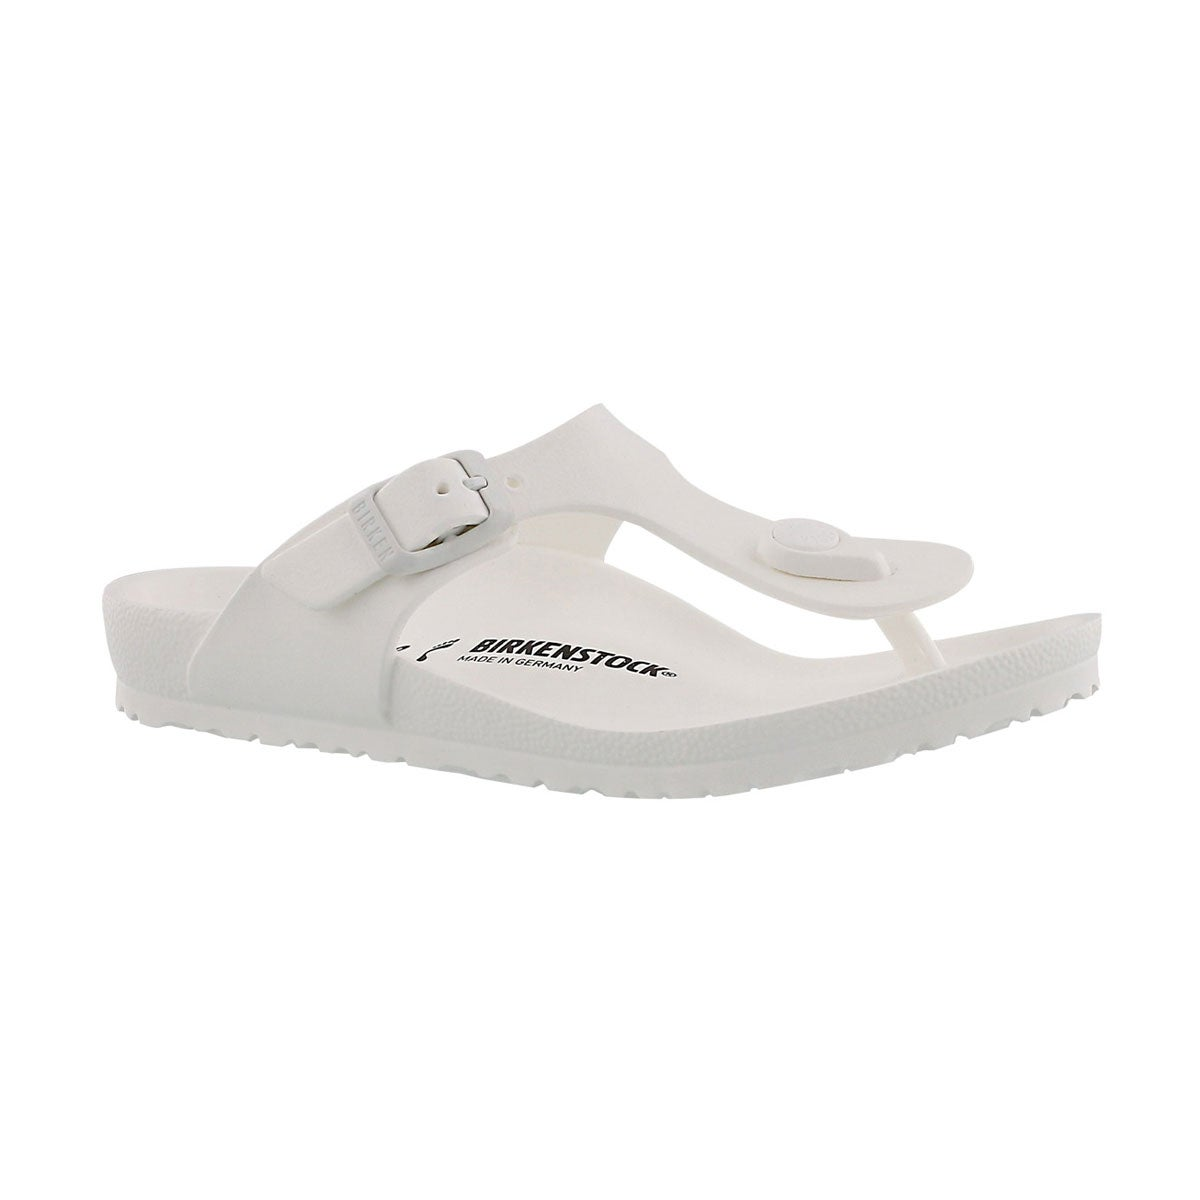 Girls' GIZEH EVA white thong sandals